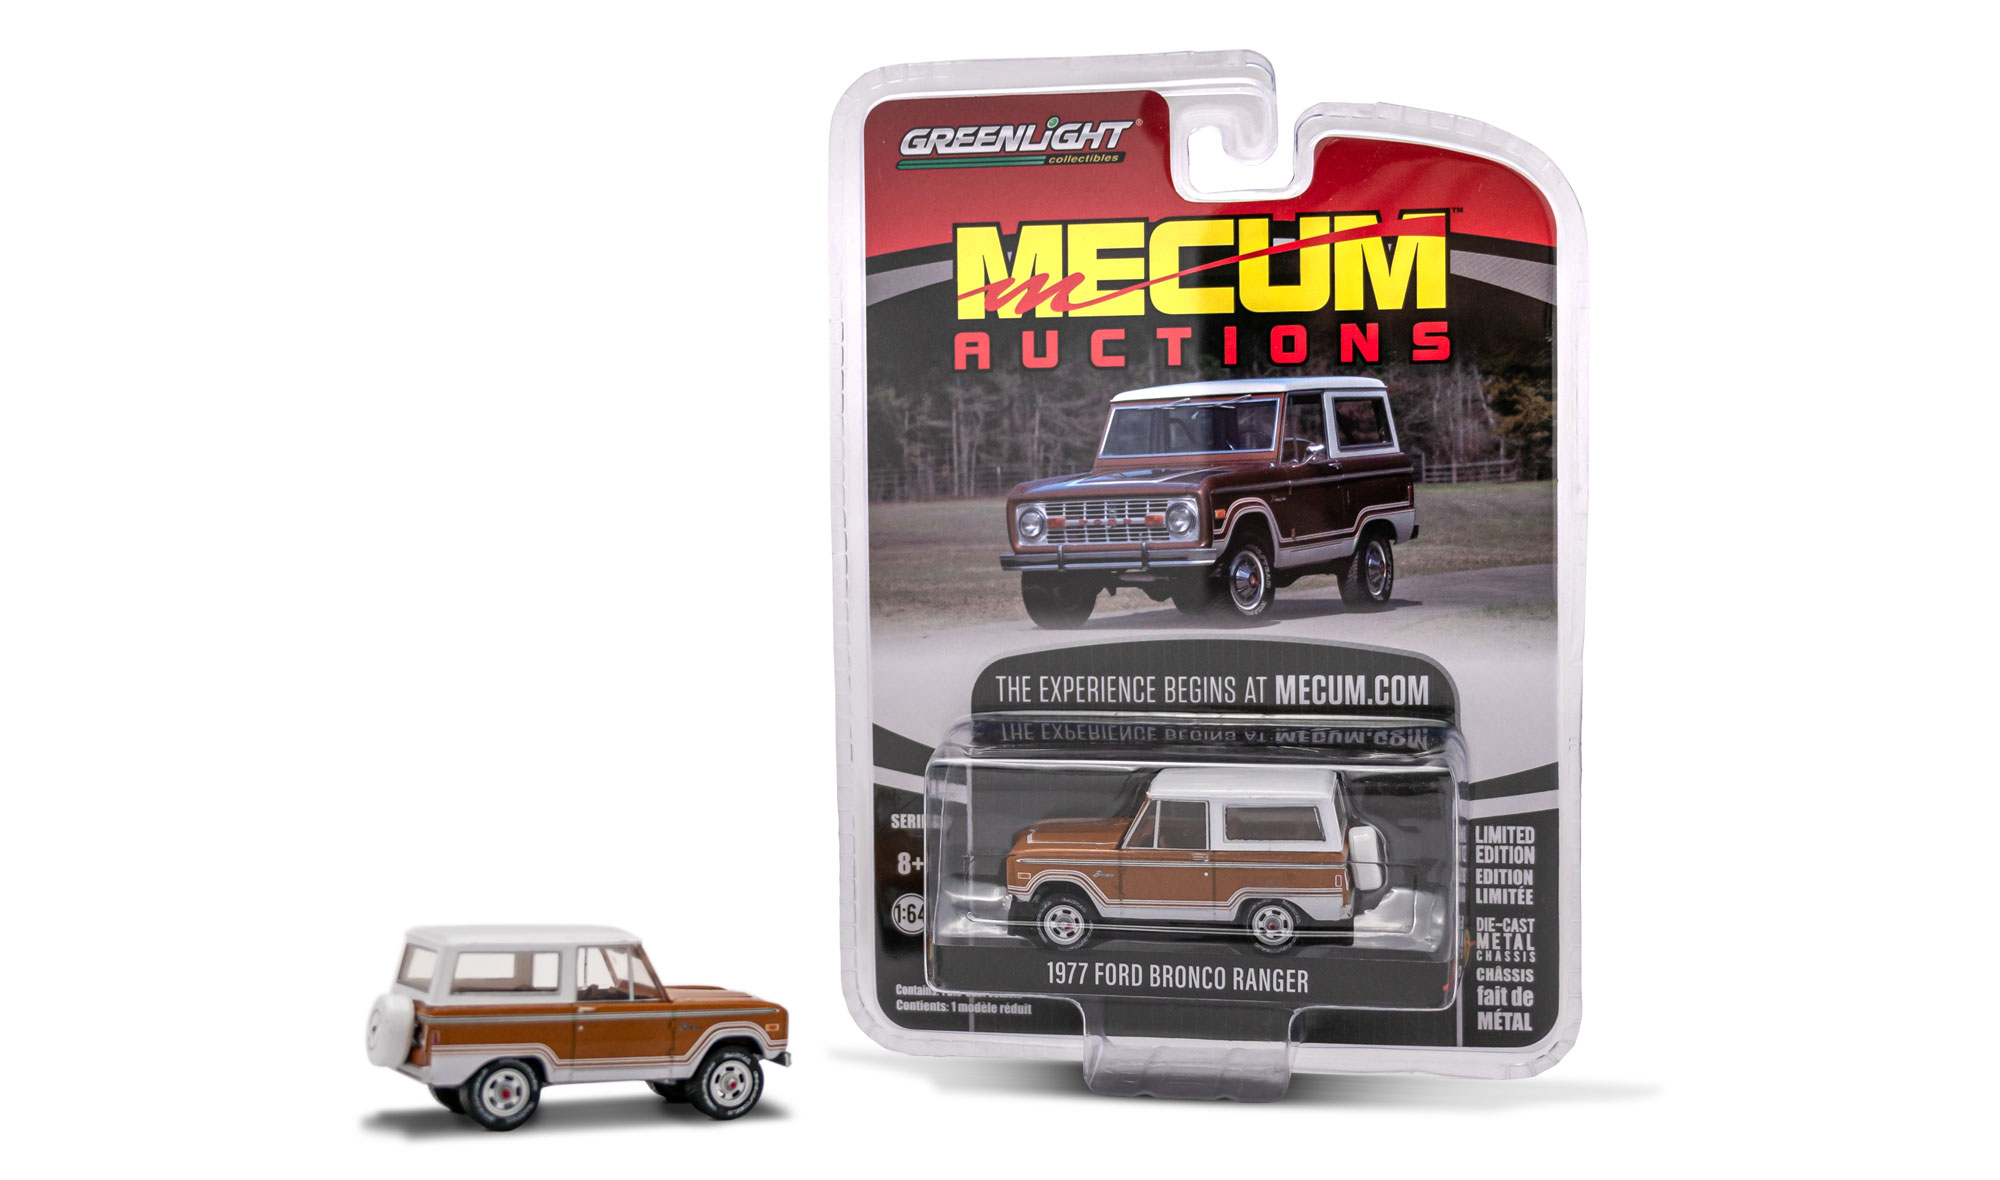 1977 Ford Bronco Ranger - Brown, Mecum Auctions 1:64 Die Cast